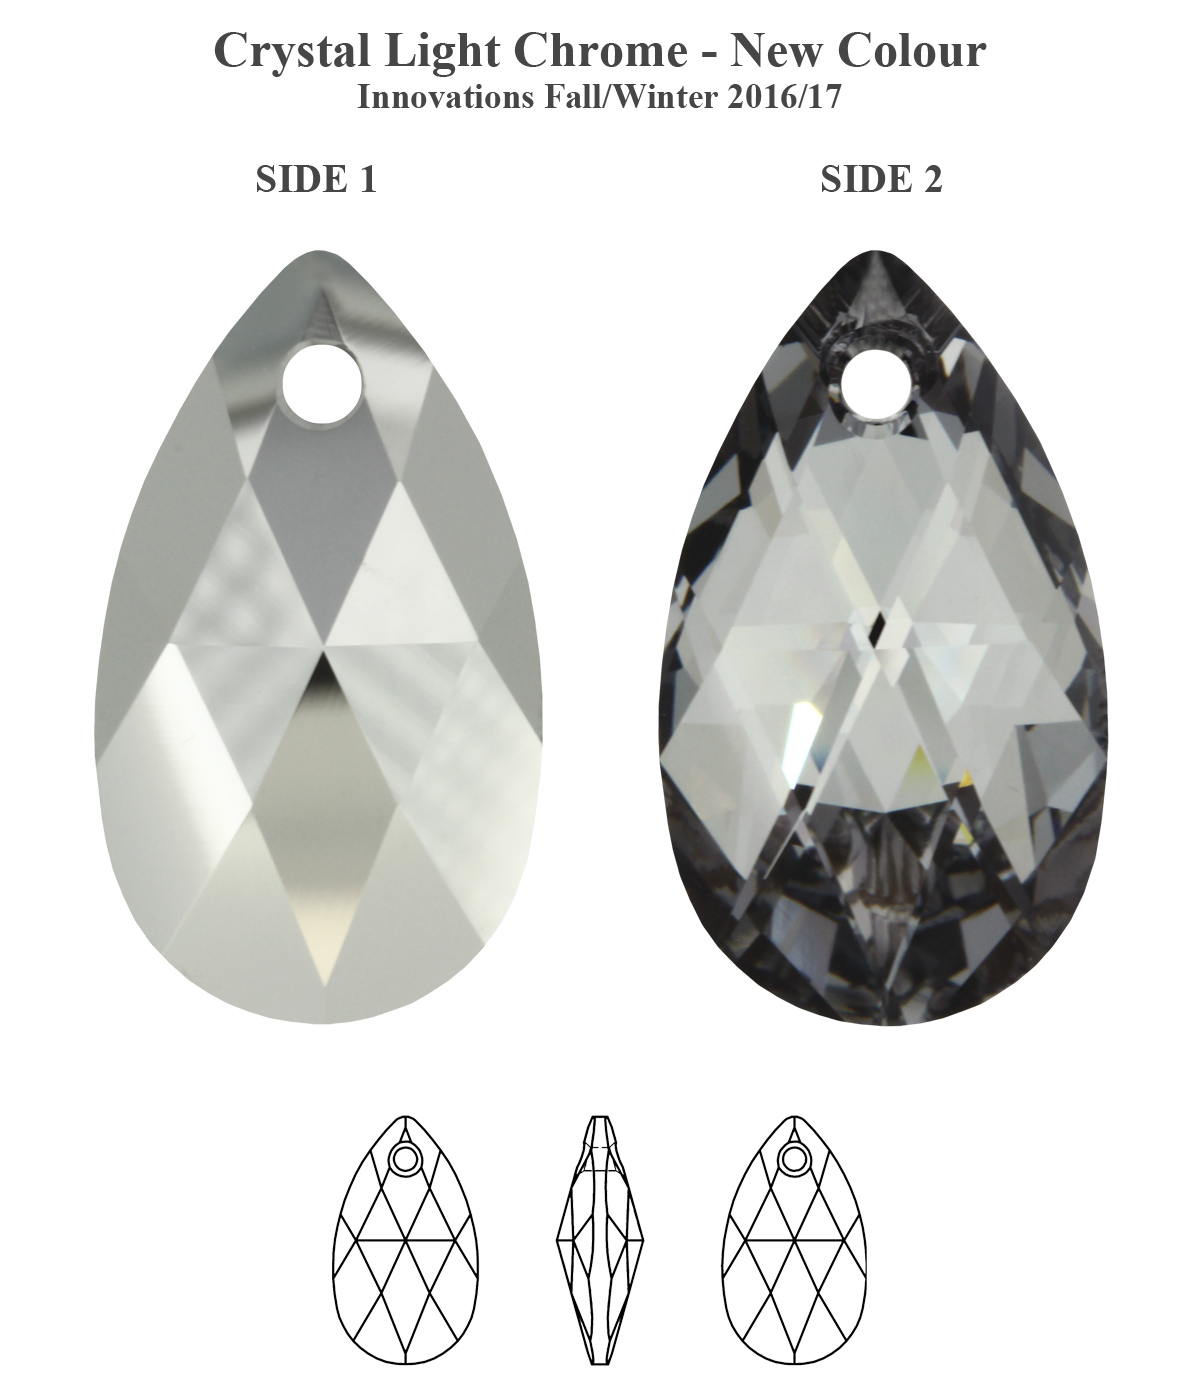 Genuine swarovski 6106 pear shape crystal teardrop pendants all genuine swarovski 6106 pear shape crystal teardrop pendants aloadofball Gallery